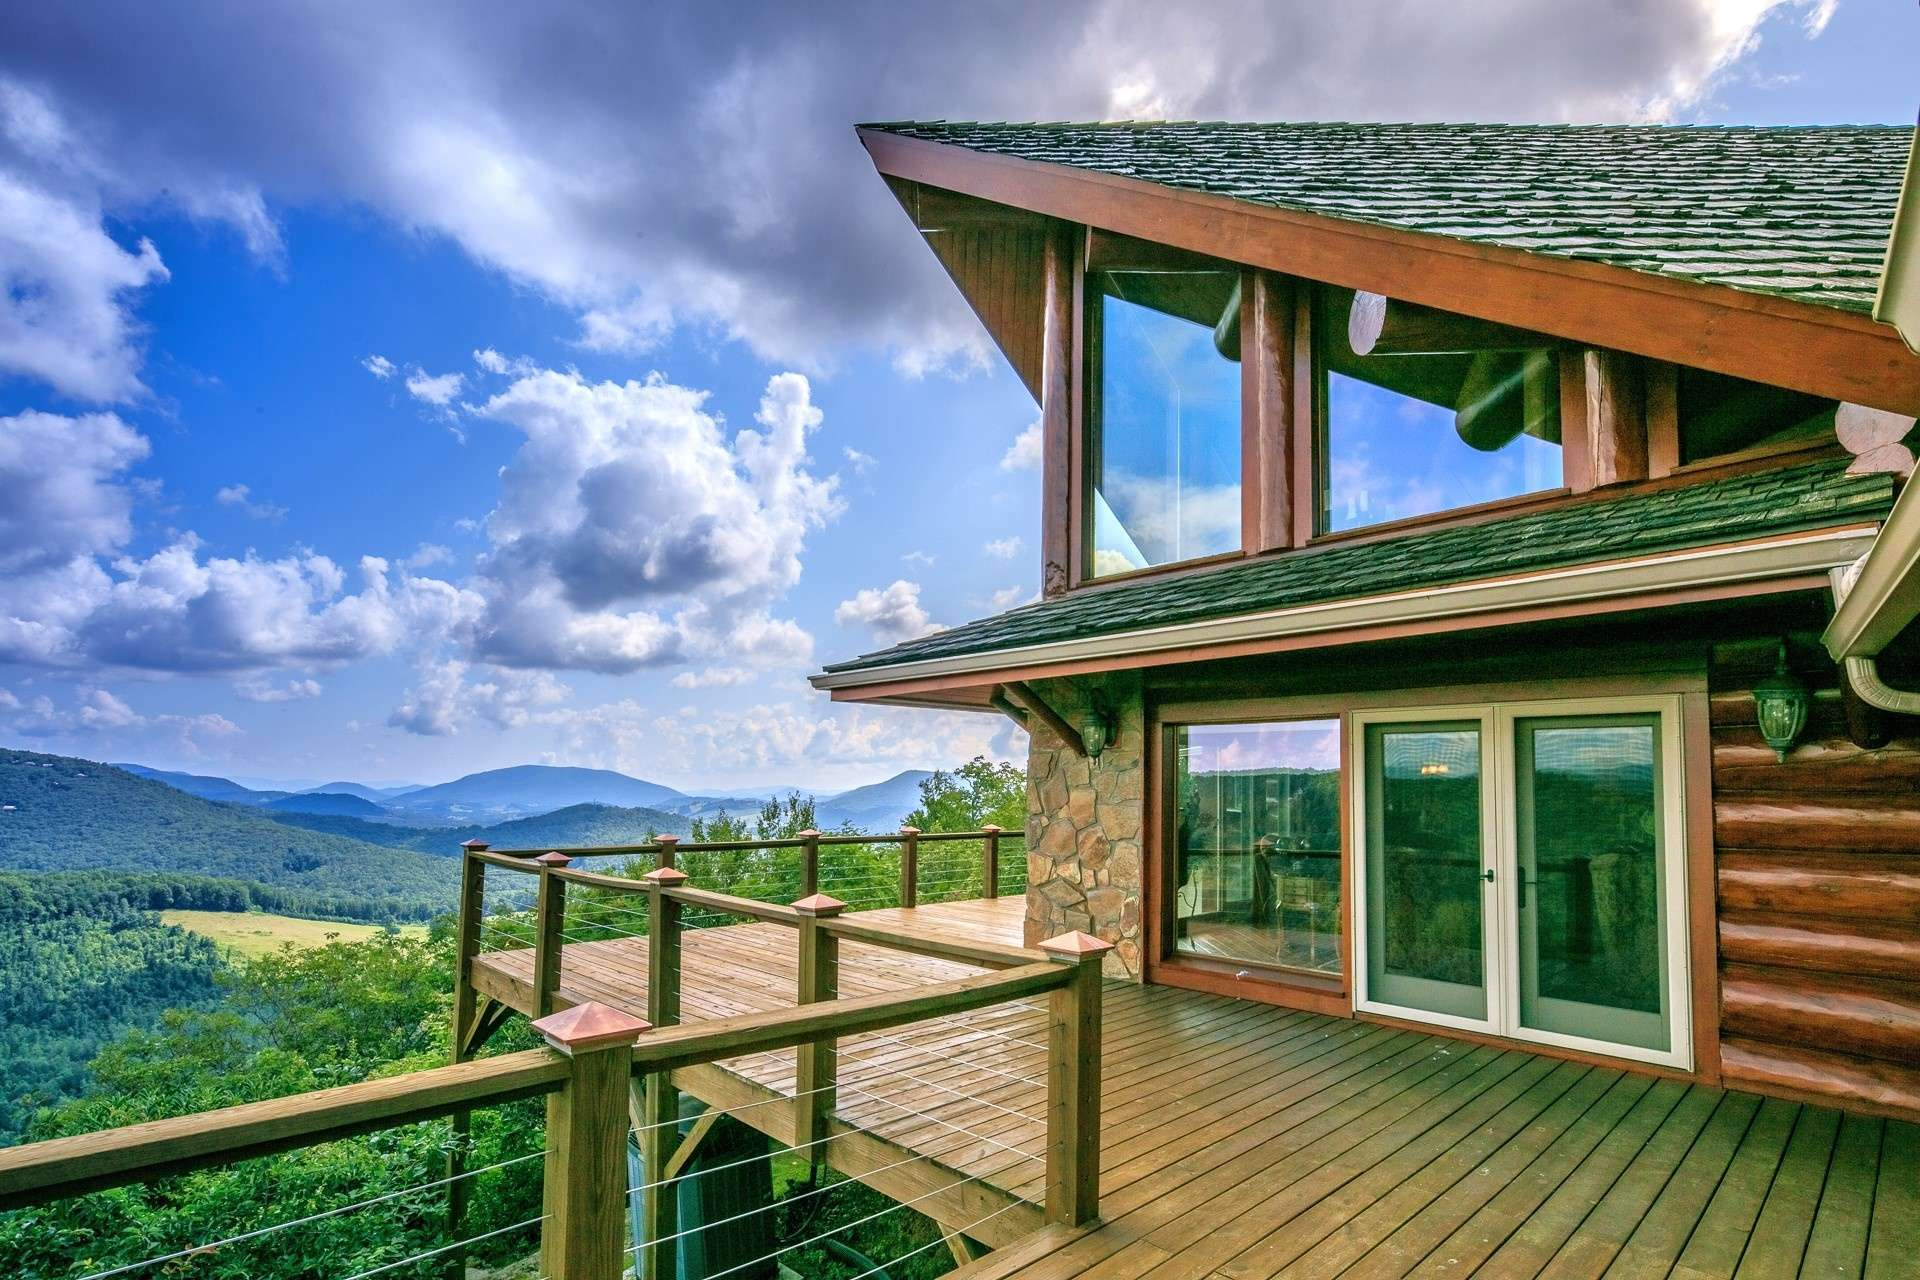 This mountaintop oasis offers end-of-the road privacy, a stunning log home, guest house (both furnished,) and 19 beautifully wooded acres offering additional home sites, if desired.